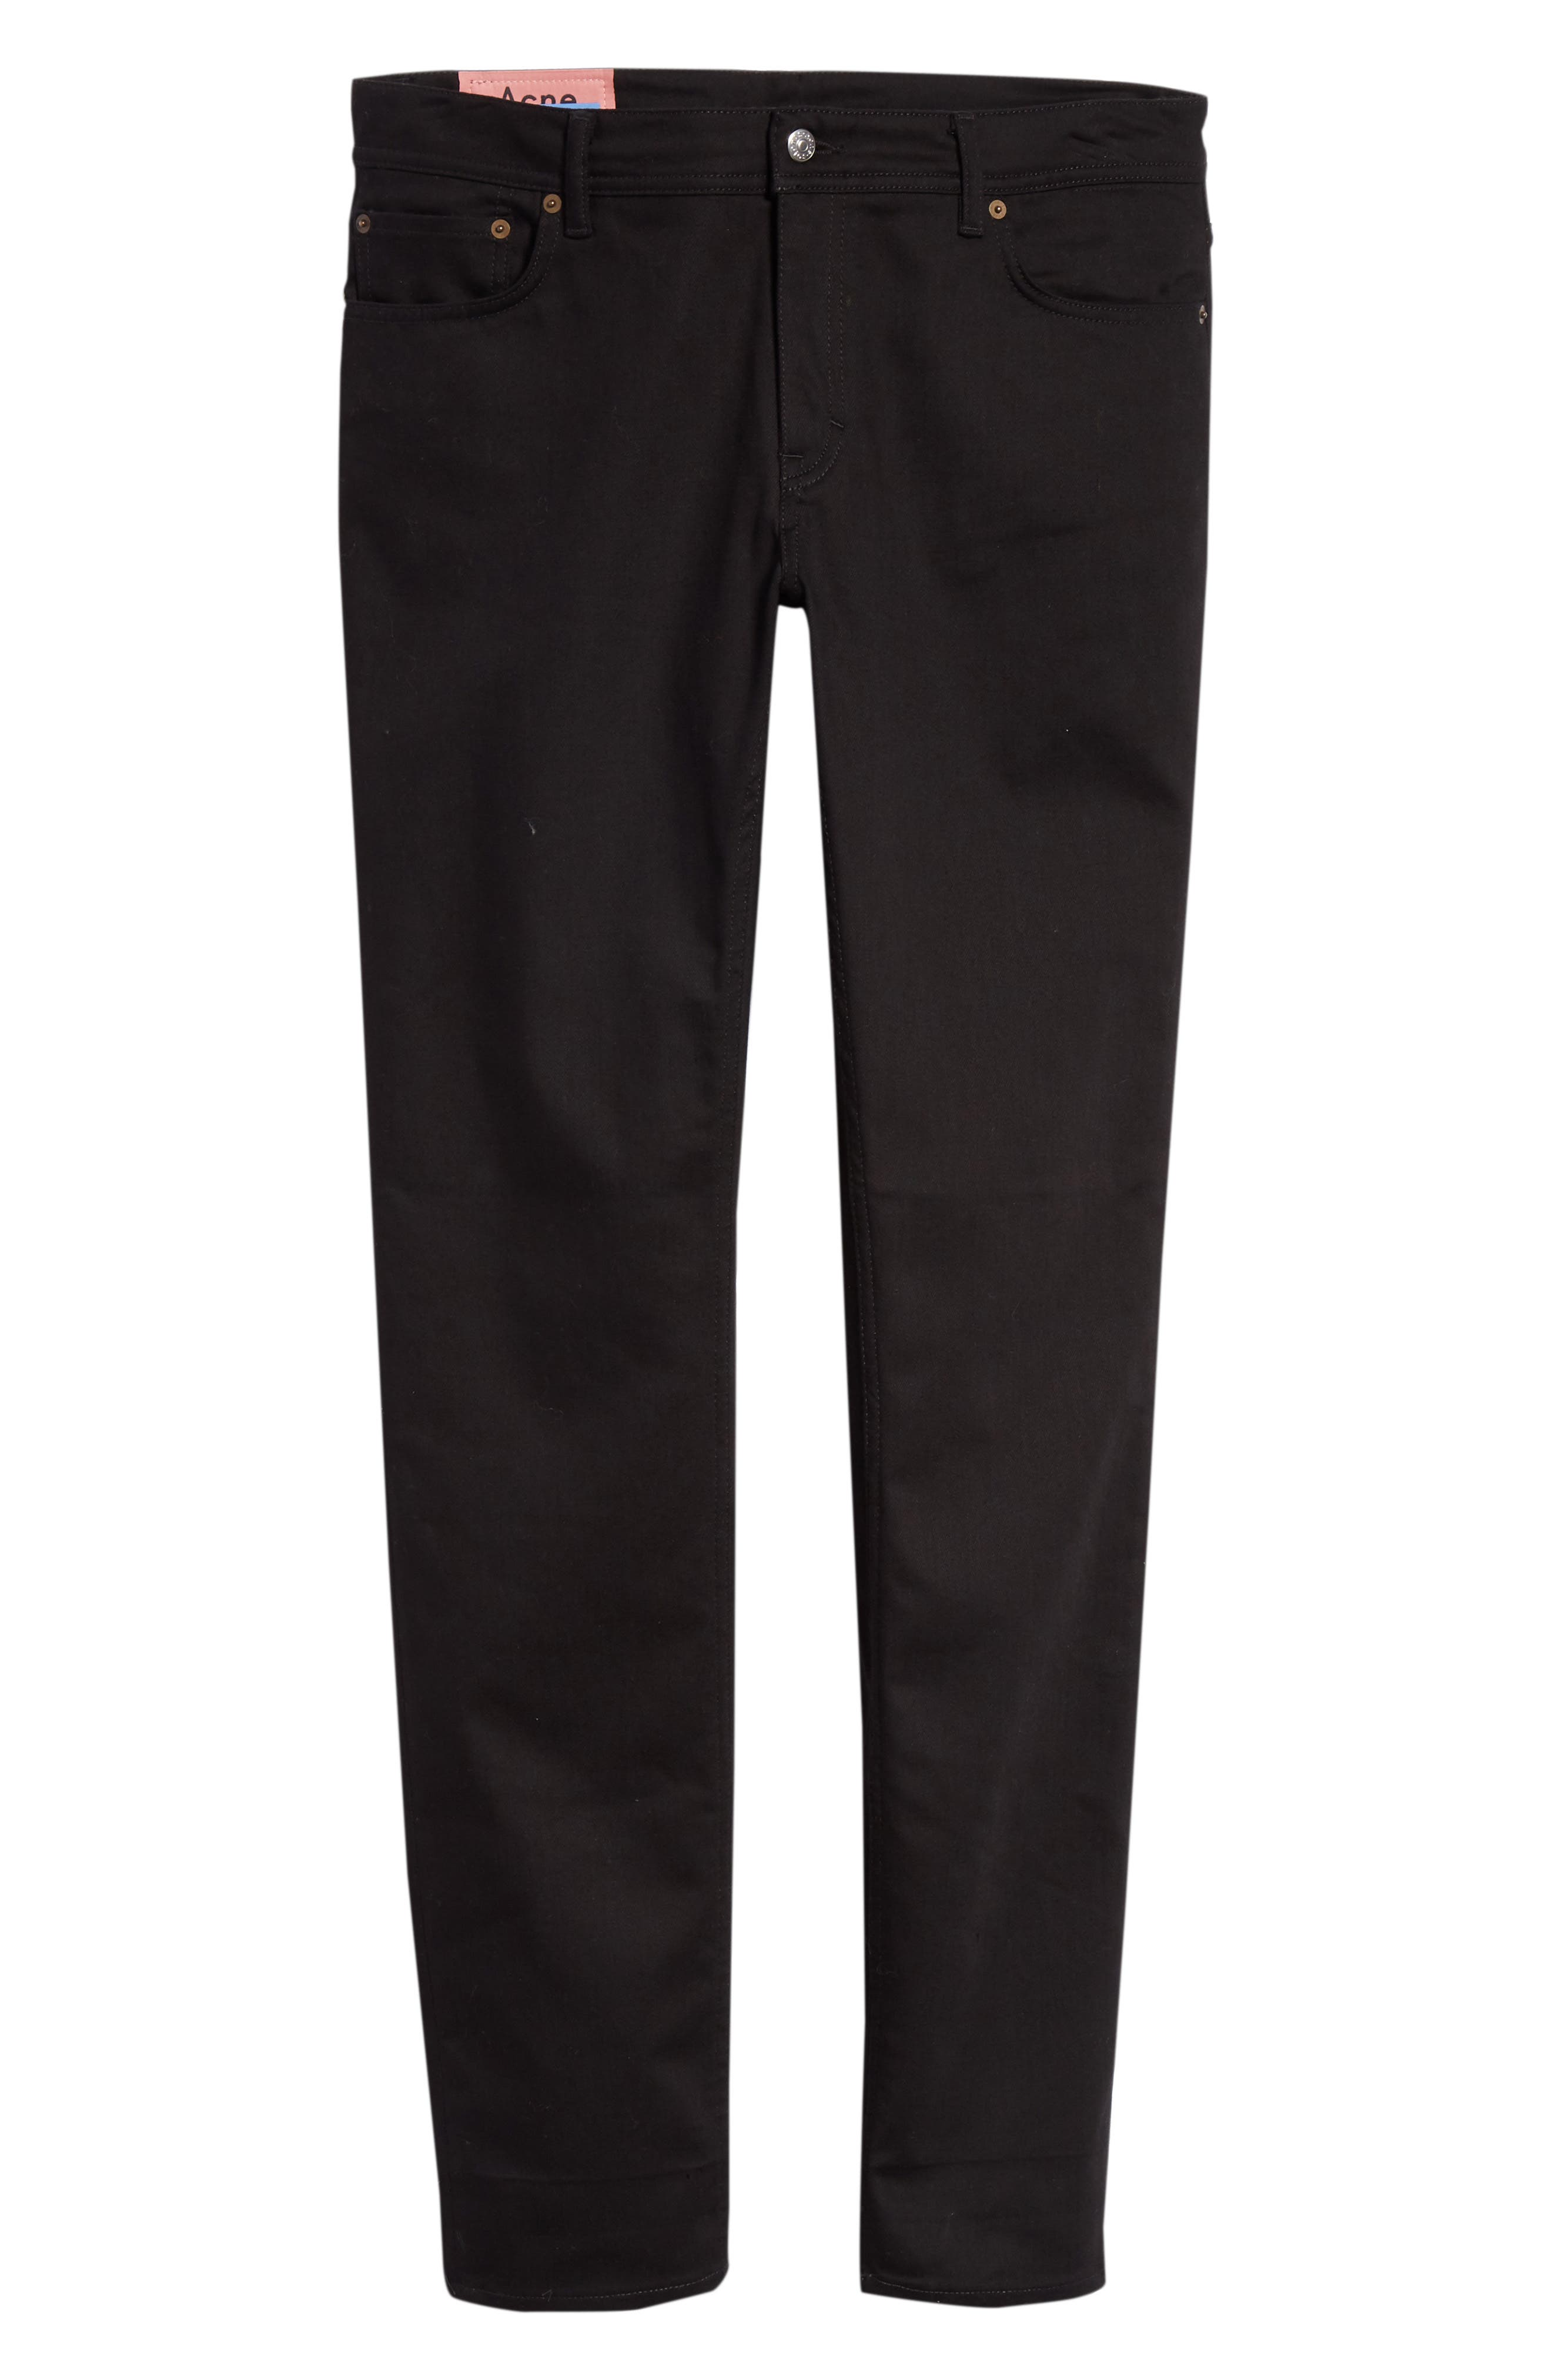 North Stay Slim Fit Jeans,                             Alternate thumbnail 6, color,                             NORTH STAY BLACK